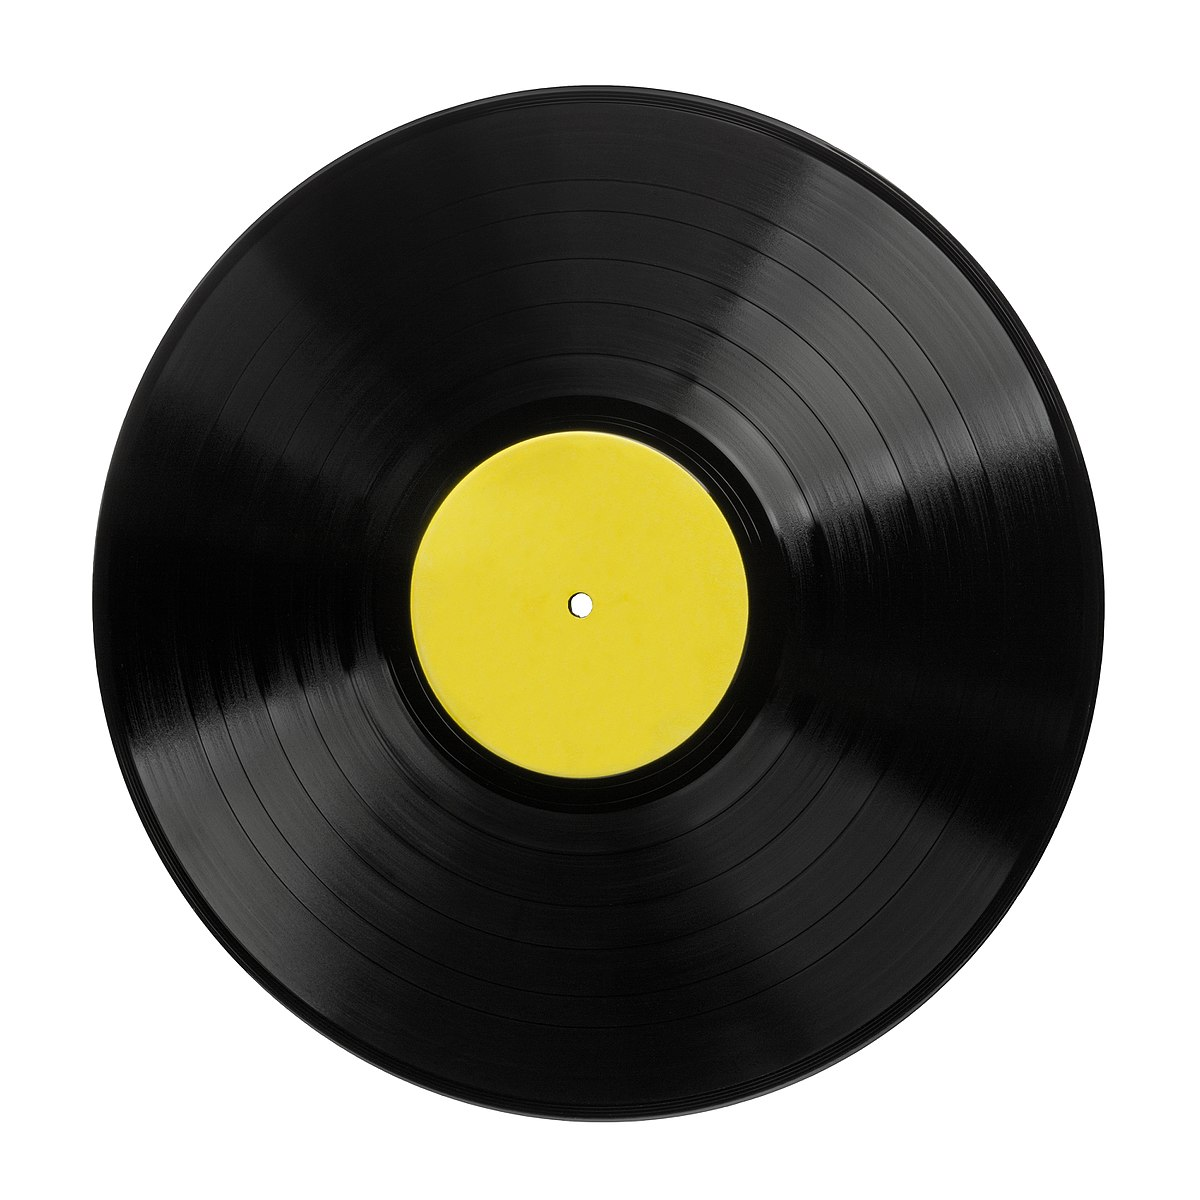 Phonograph record - Wikipedia